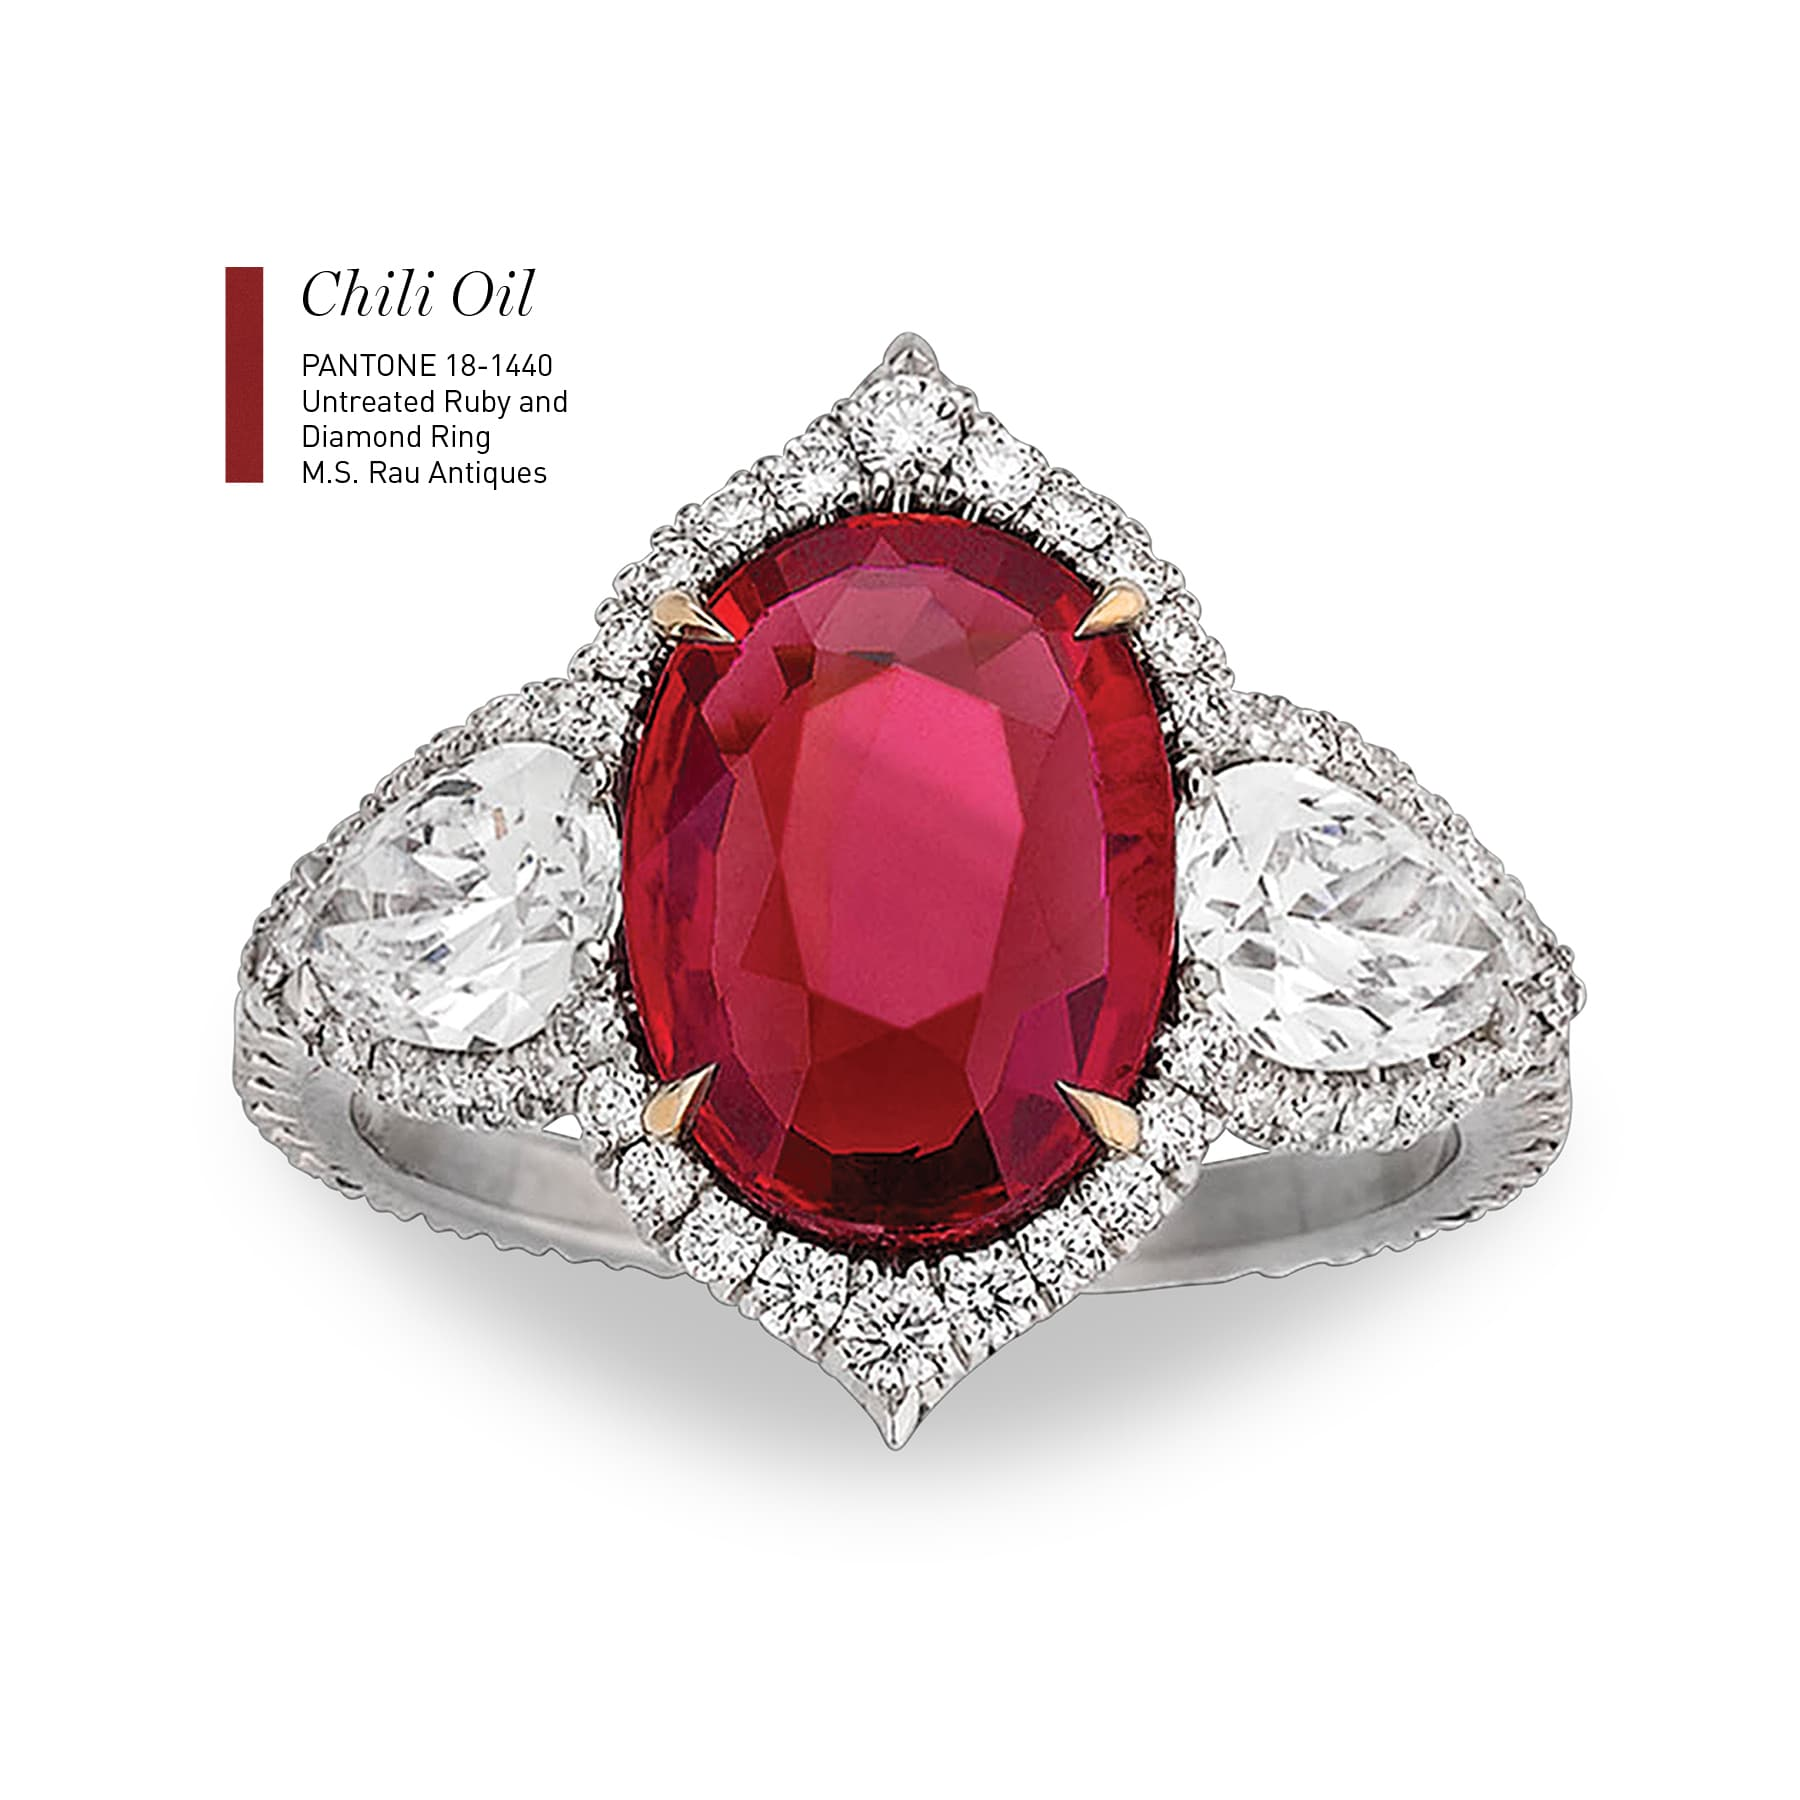 Untreated Ruby and Diamond Ring